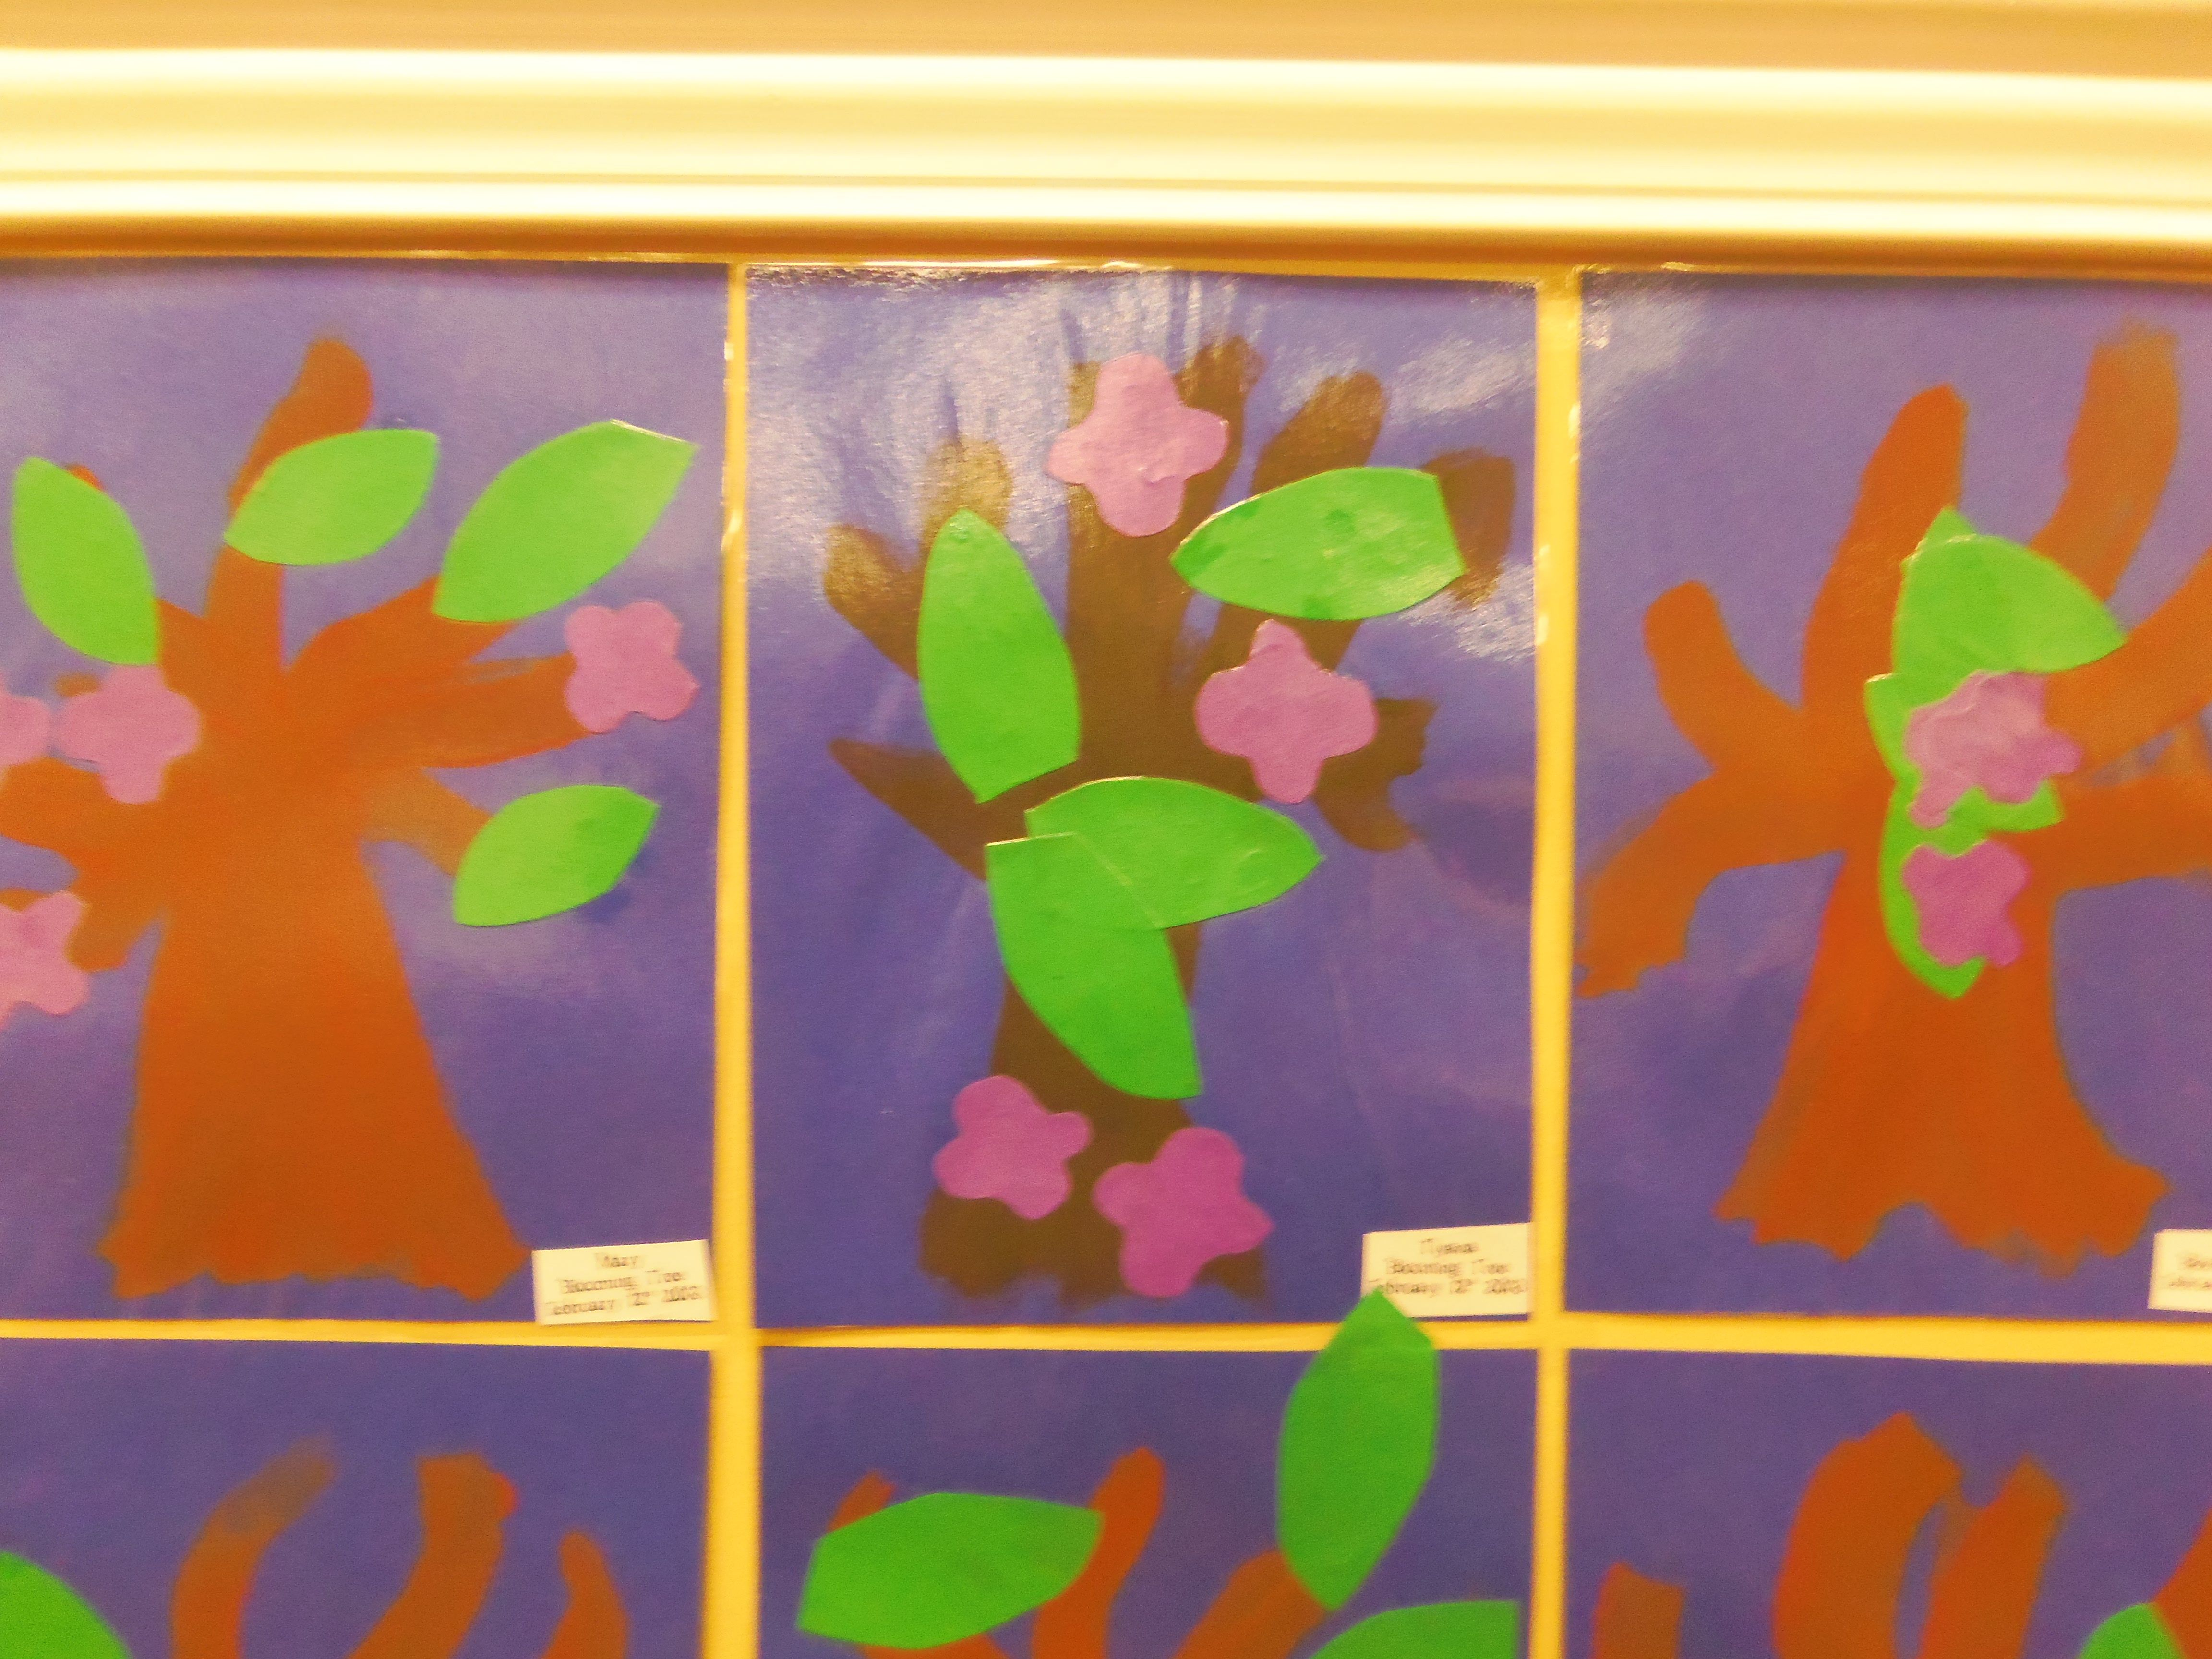 We completed this art project to help the children learn about the signs of spring. We discussed how the bare trees start to sprout leaves and flowers and for art we had the children glue leaves and flowers on the trees.